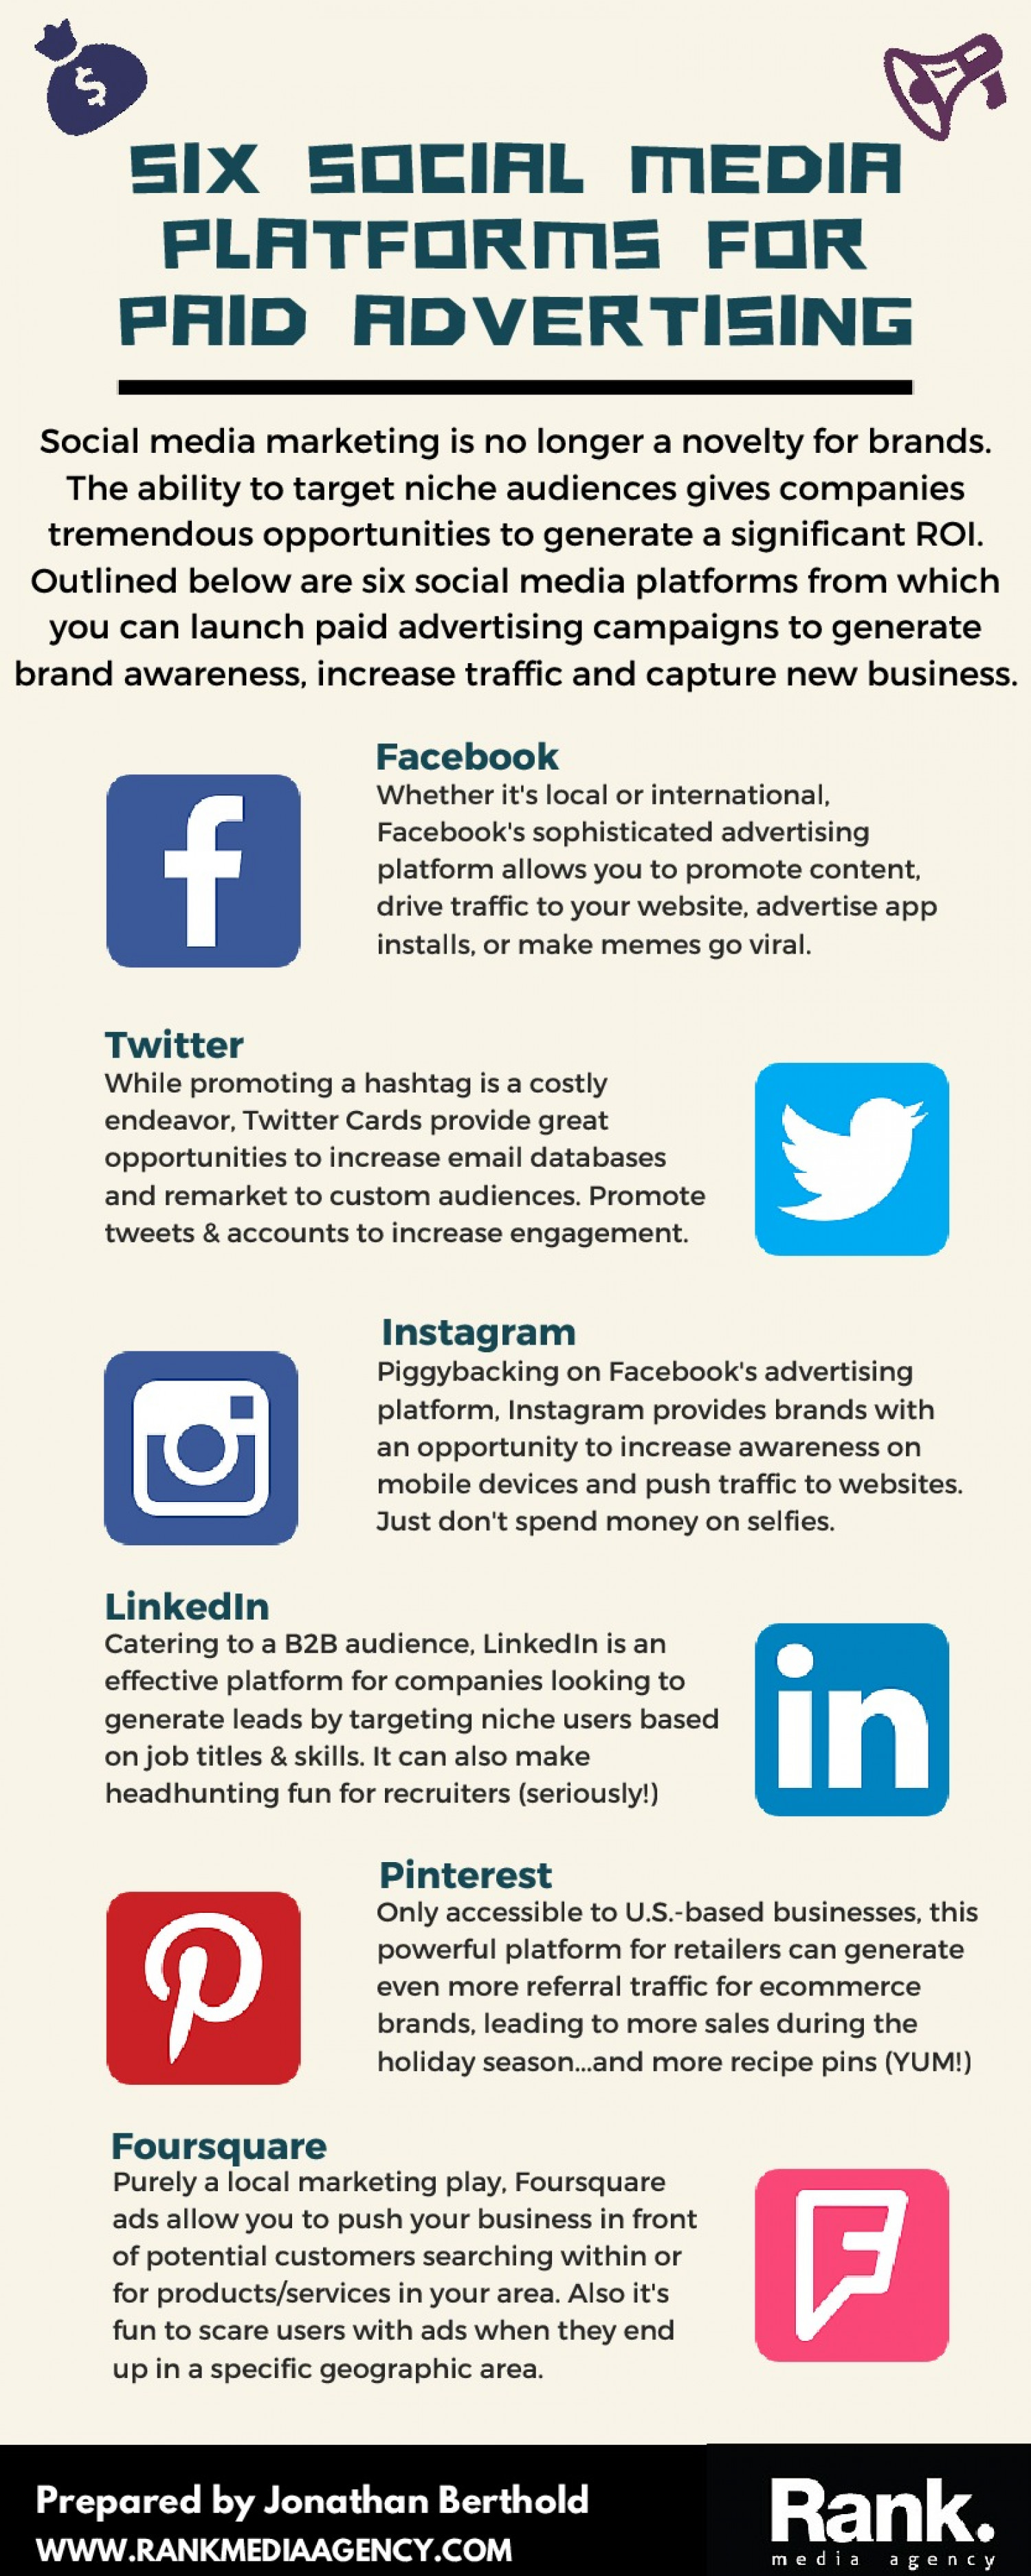 Six Social Media Platforms for Paid Advertising Infographic